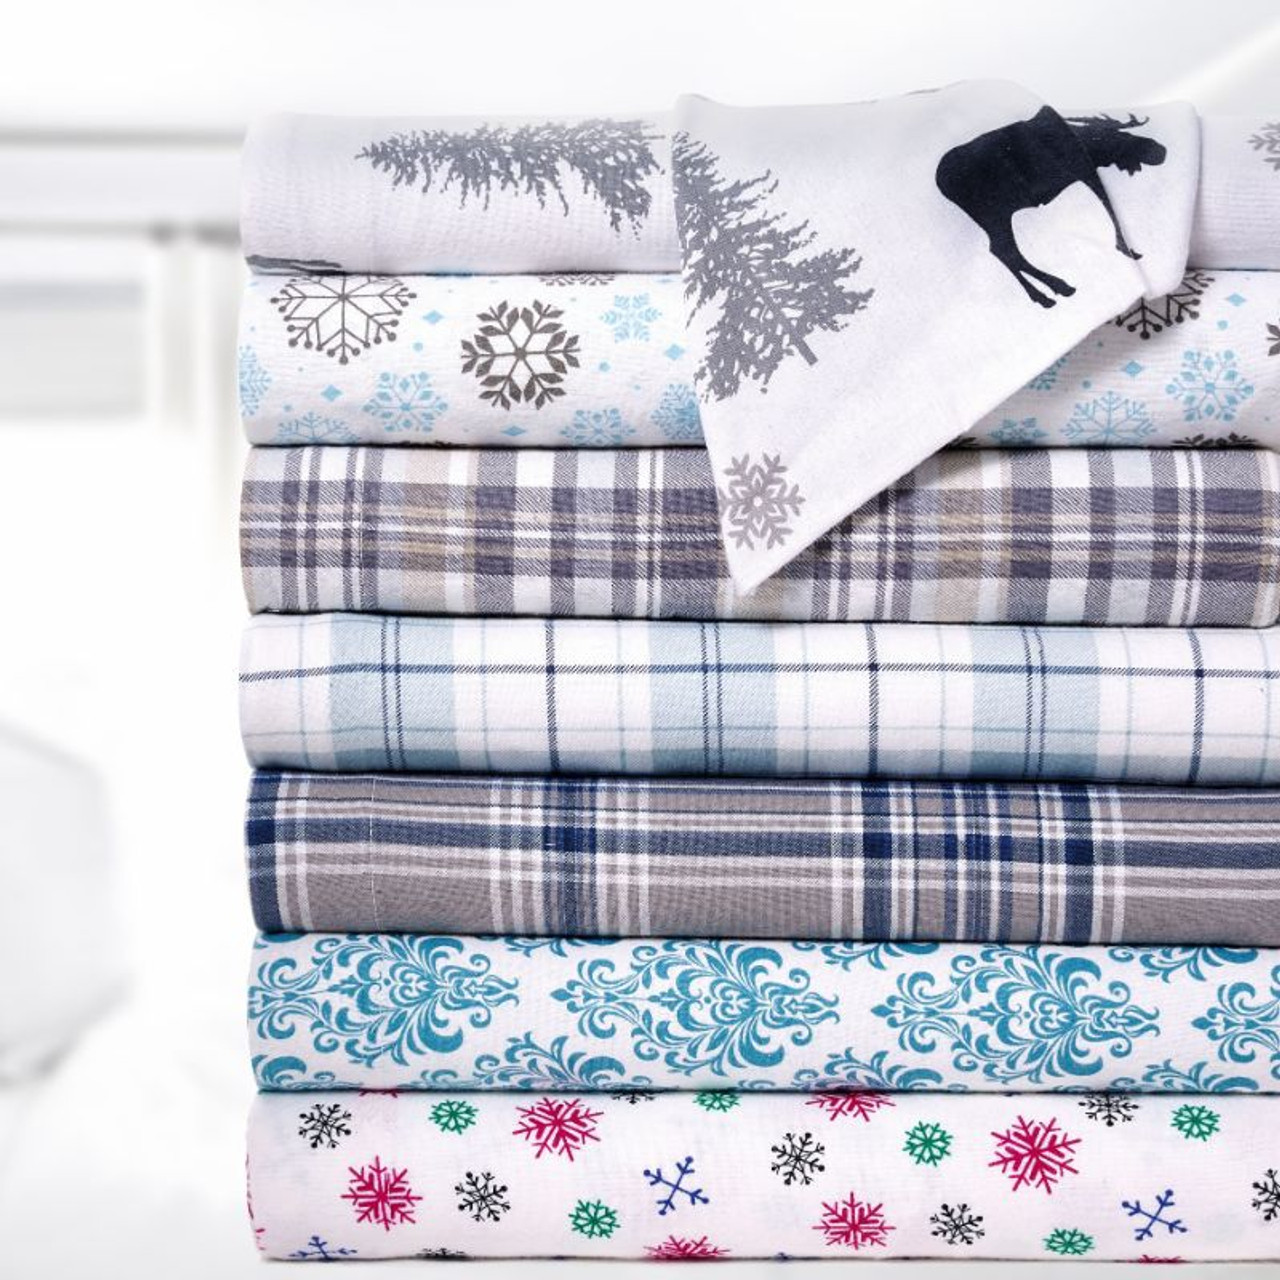 Bibb Home Holiday & Winter Printed Flannel Sheet Set 100% Cotton